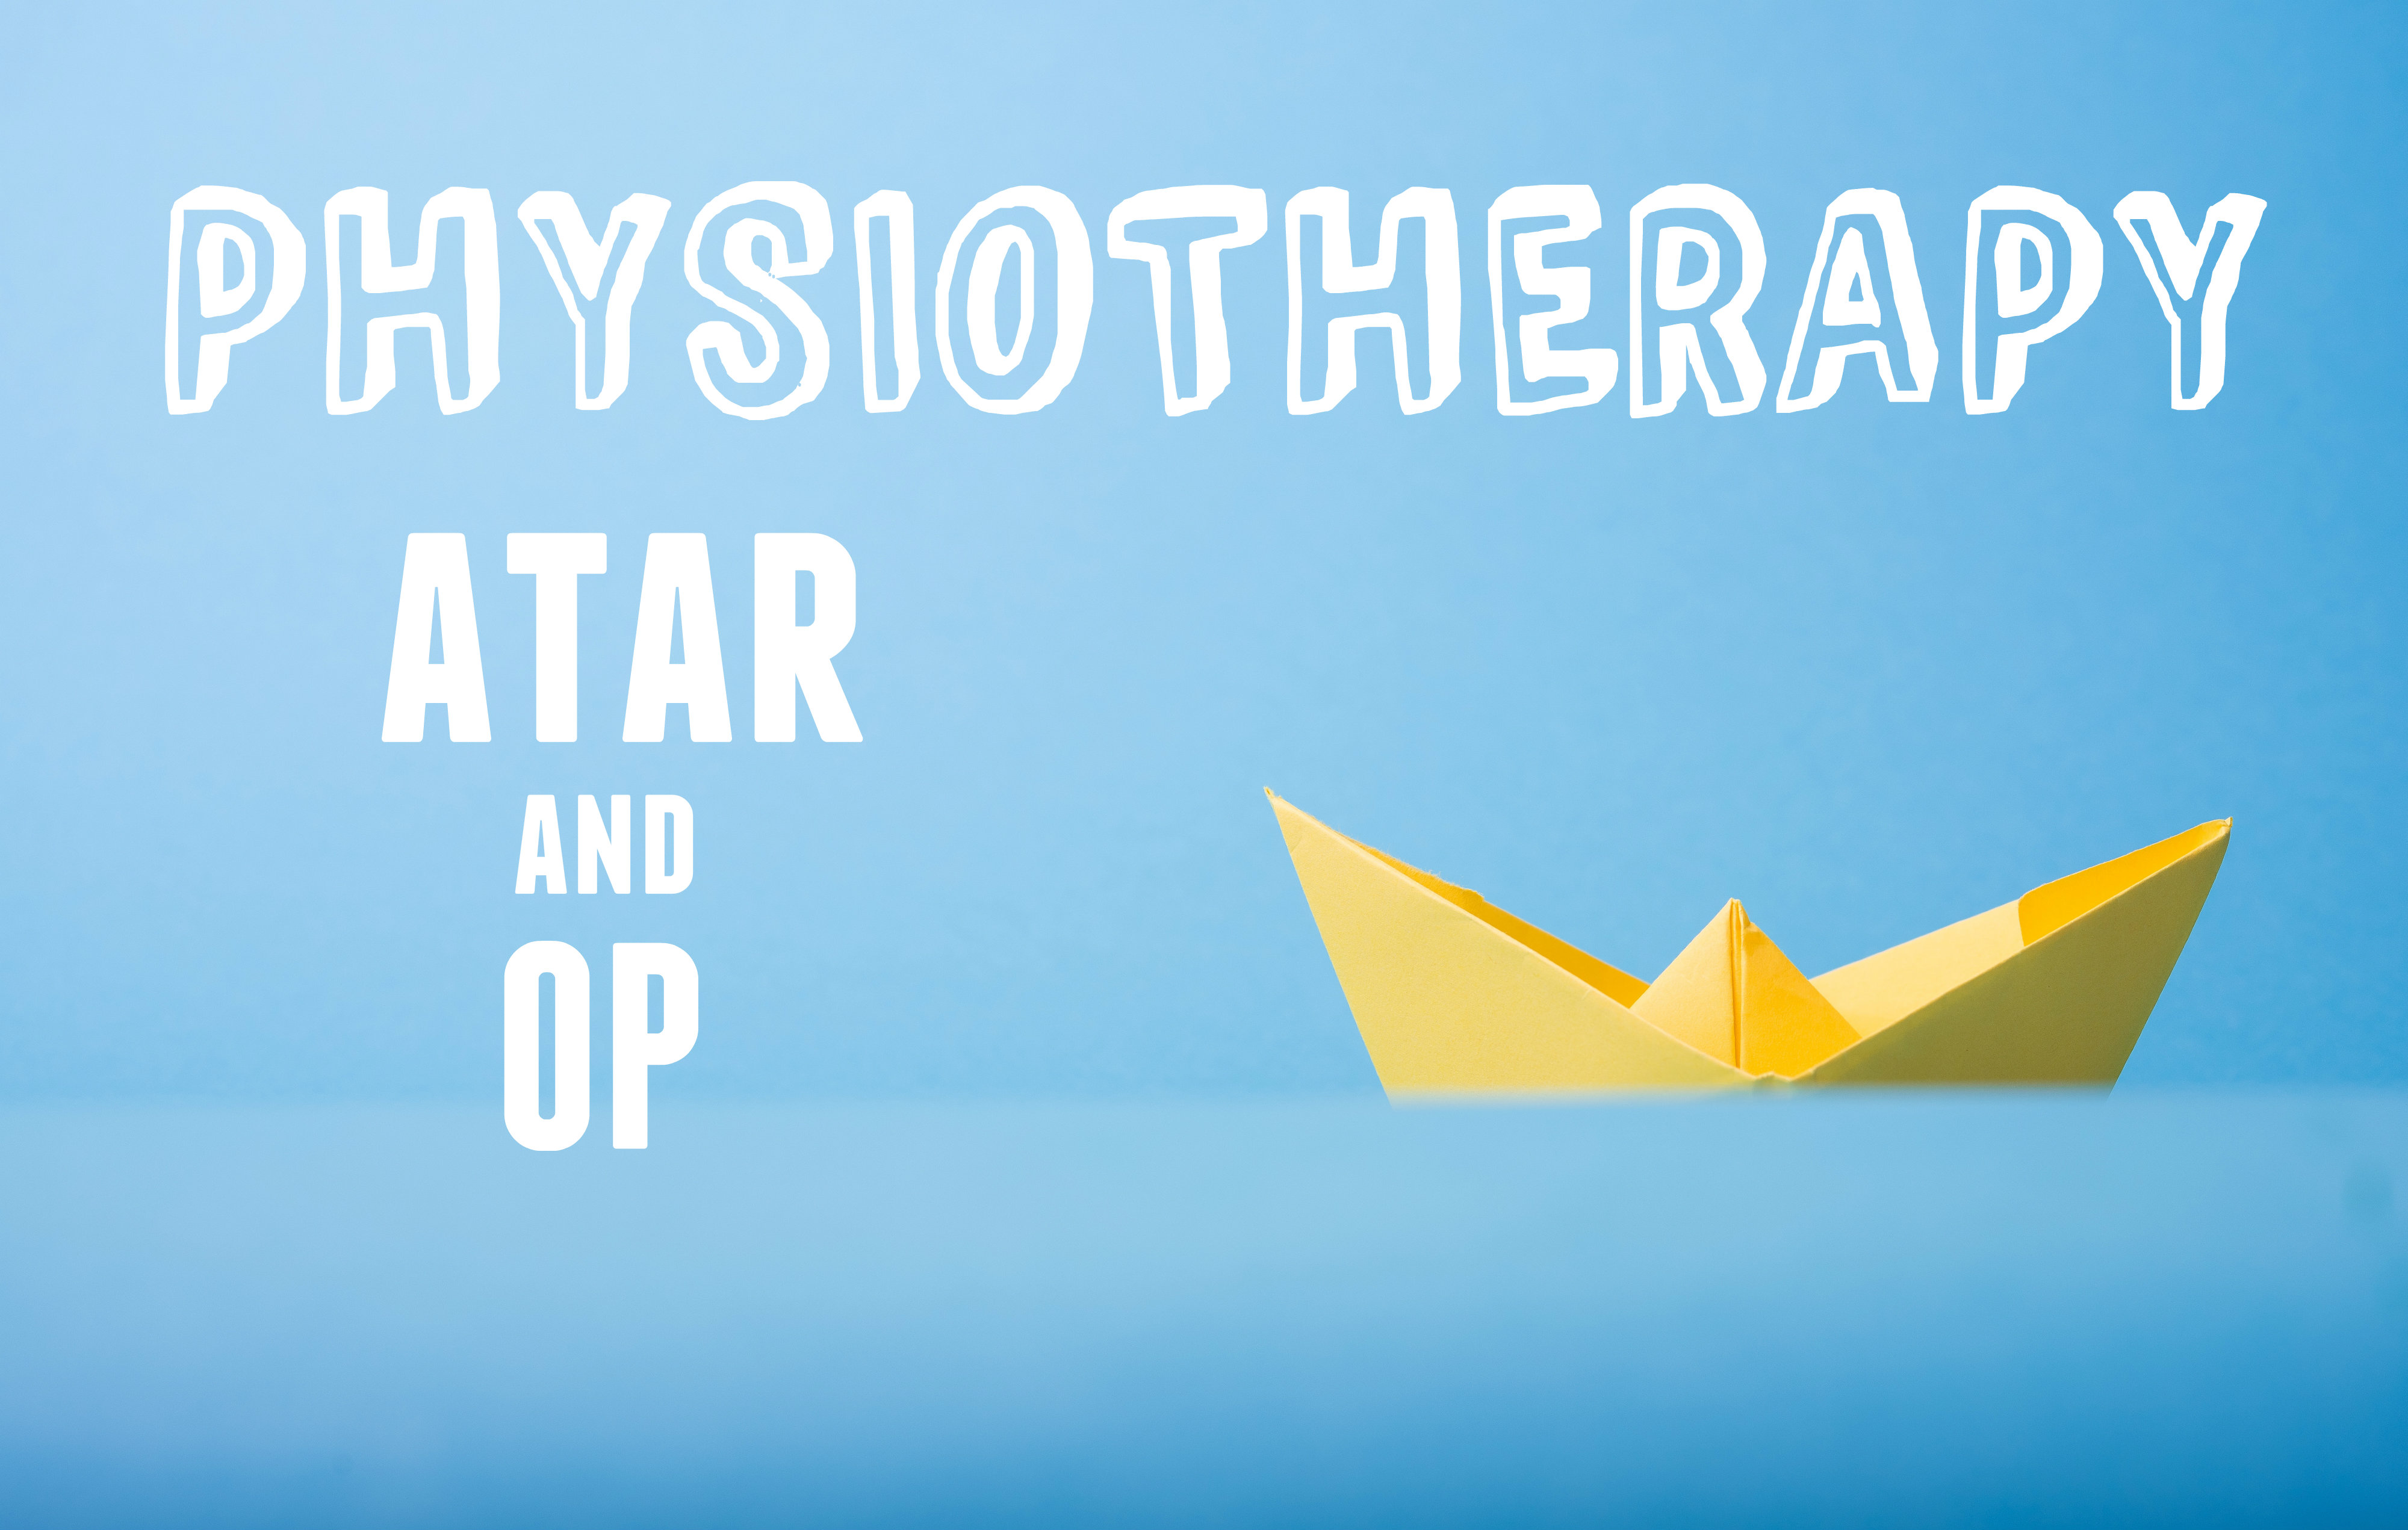 ATARs for all physiotherapy courses in Australia 2018 - My